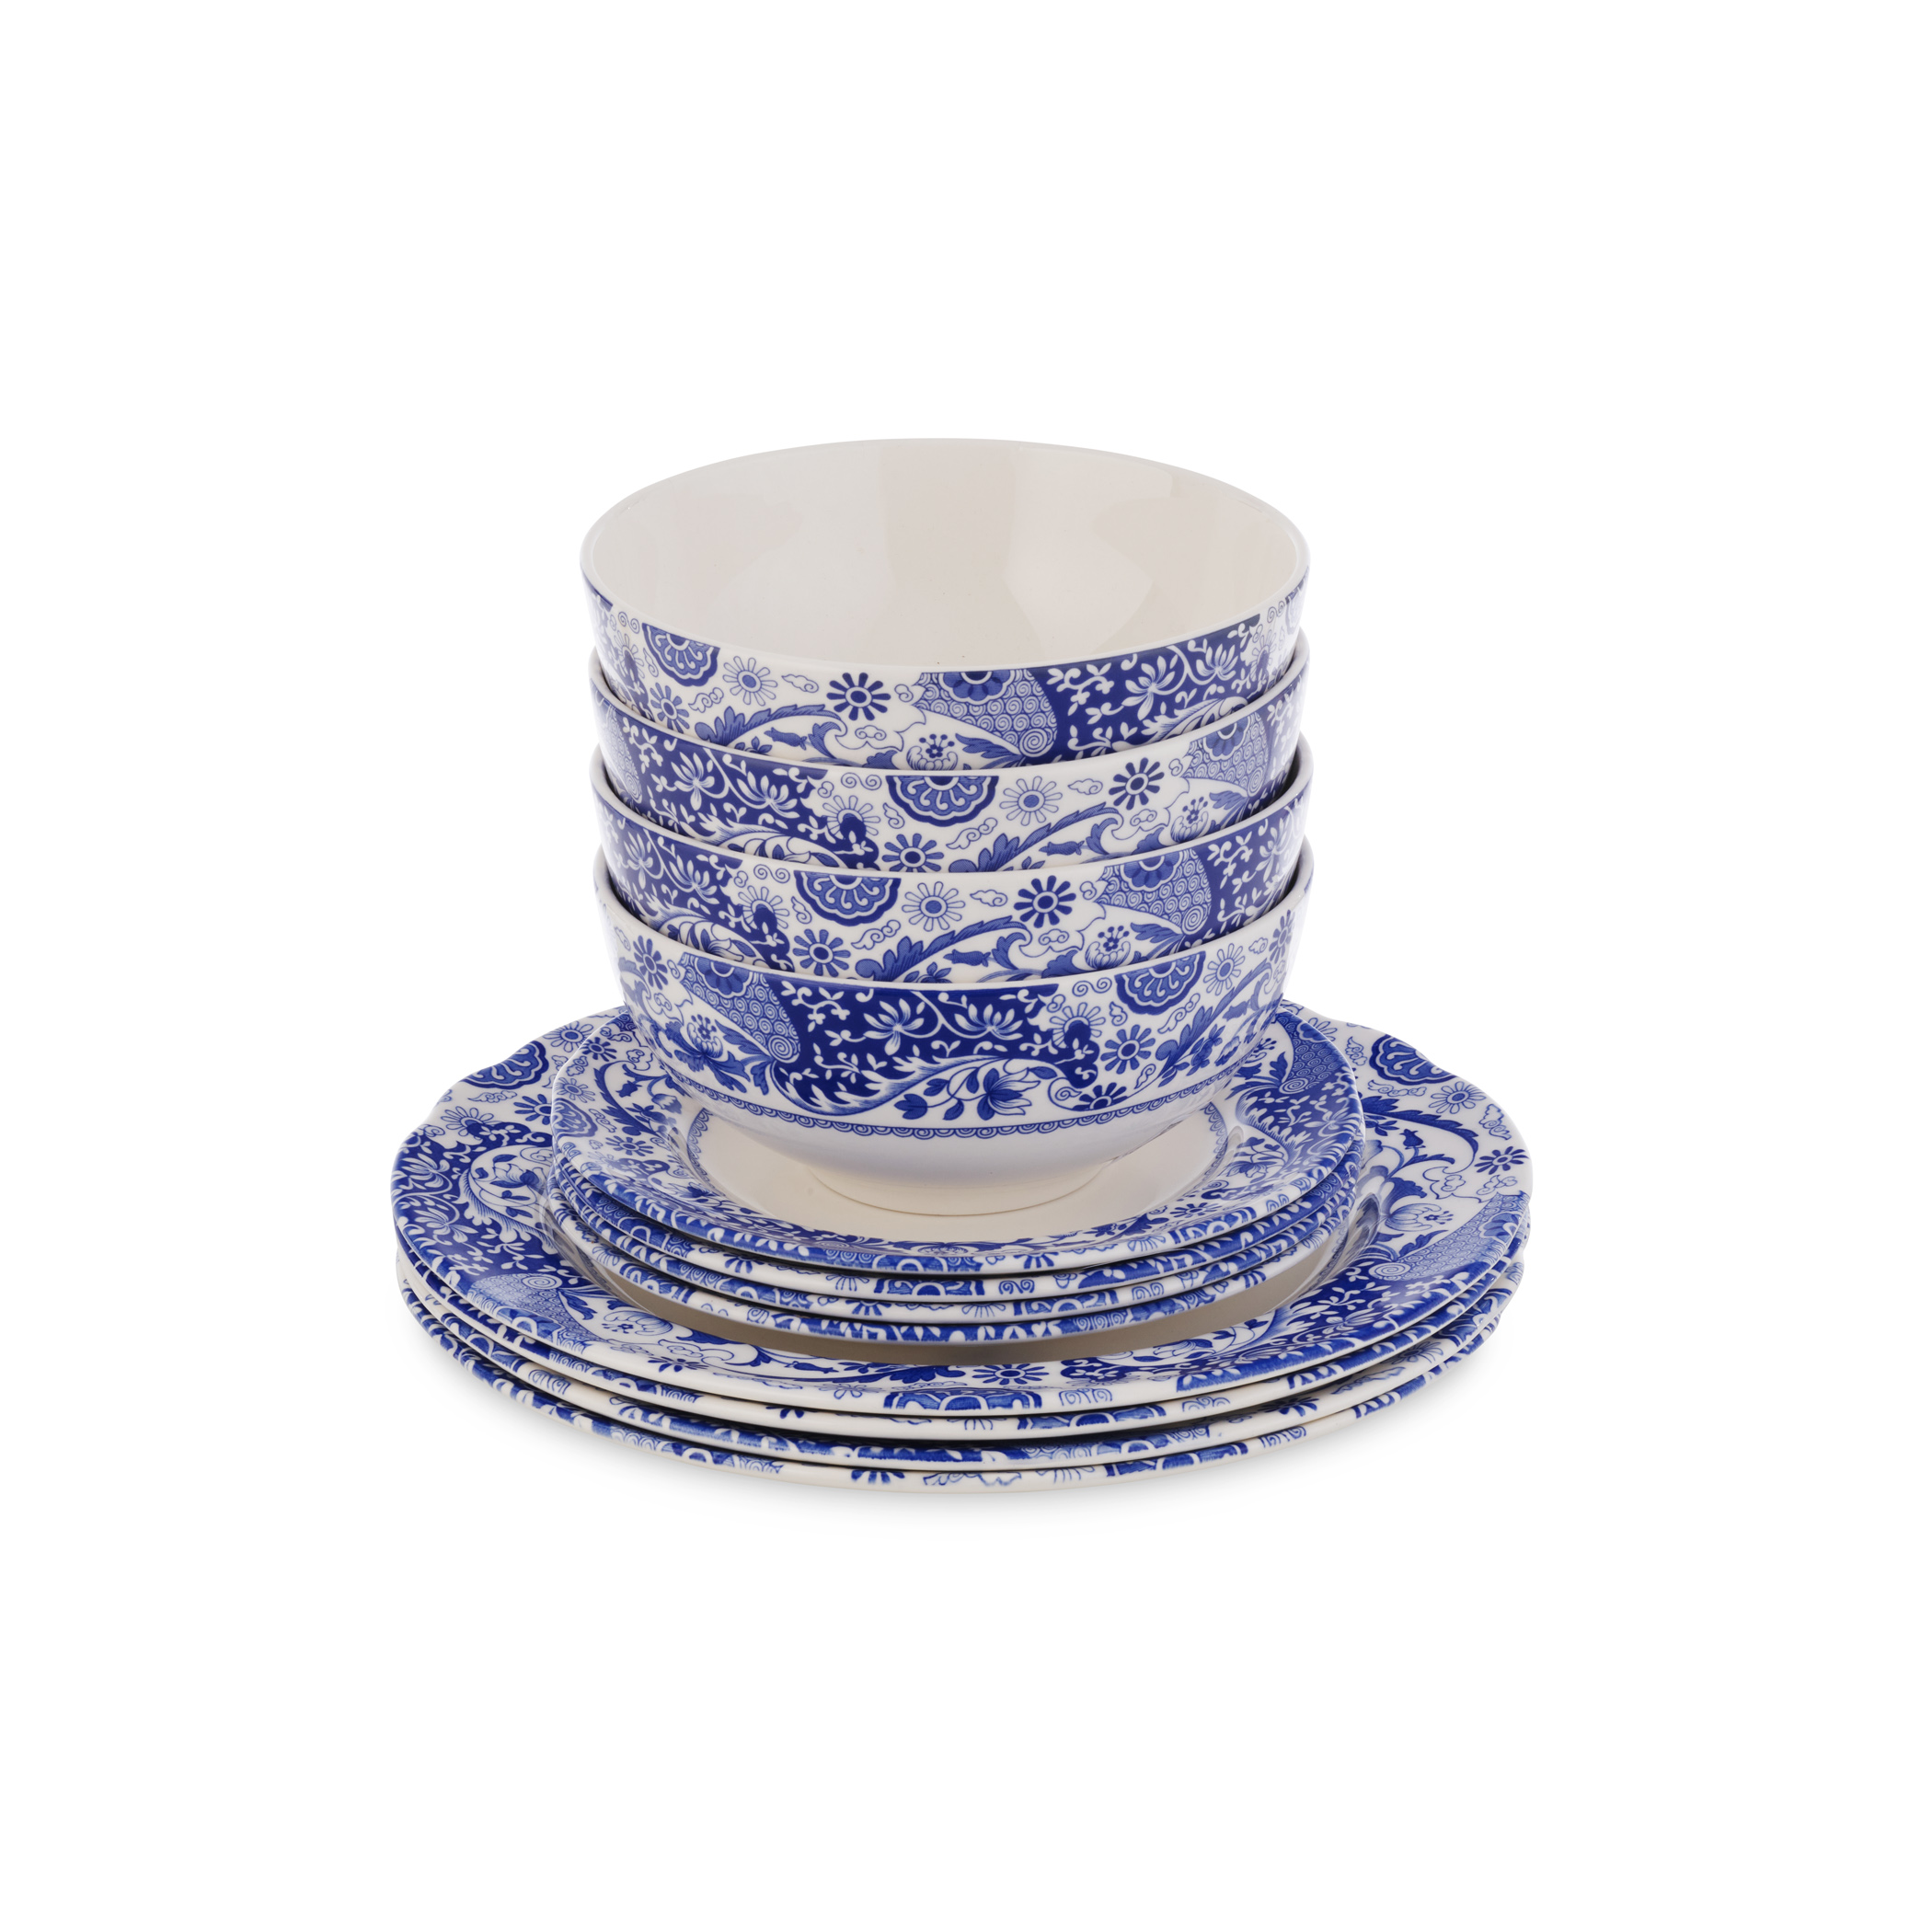 Spode Blue Italian Brocato 12 Piece Set image number 2